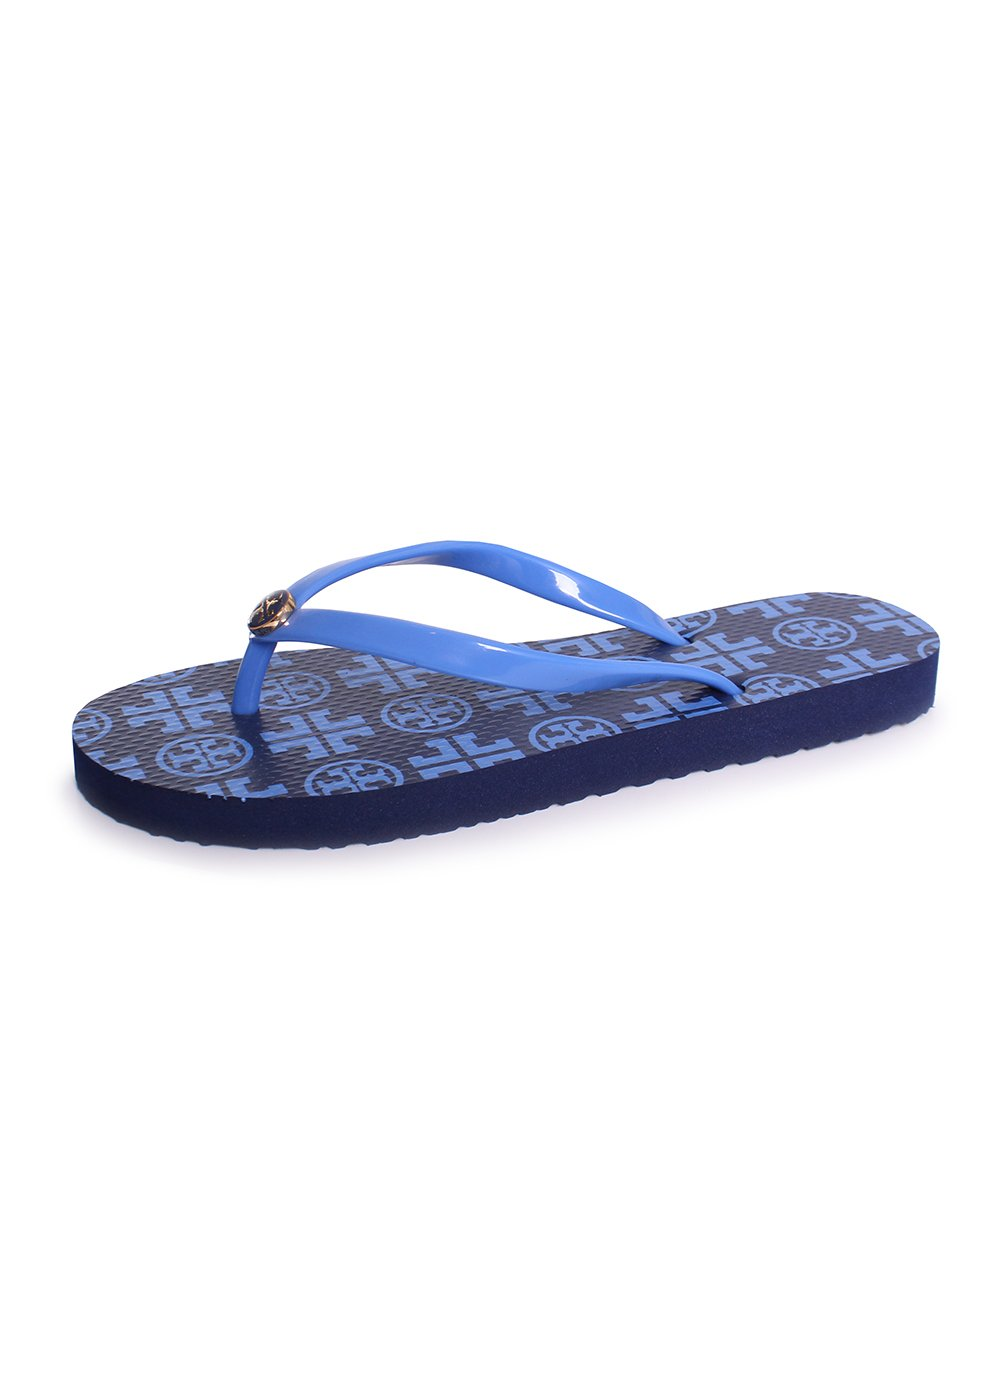 f4f991630 Galleon - Tory Burch Thin Printed Flip Flop Sandals In Navy Sea New  Traveler Size 8